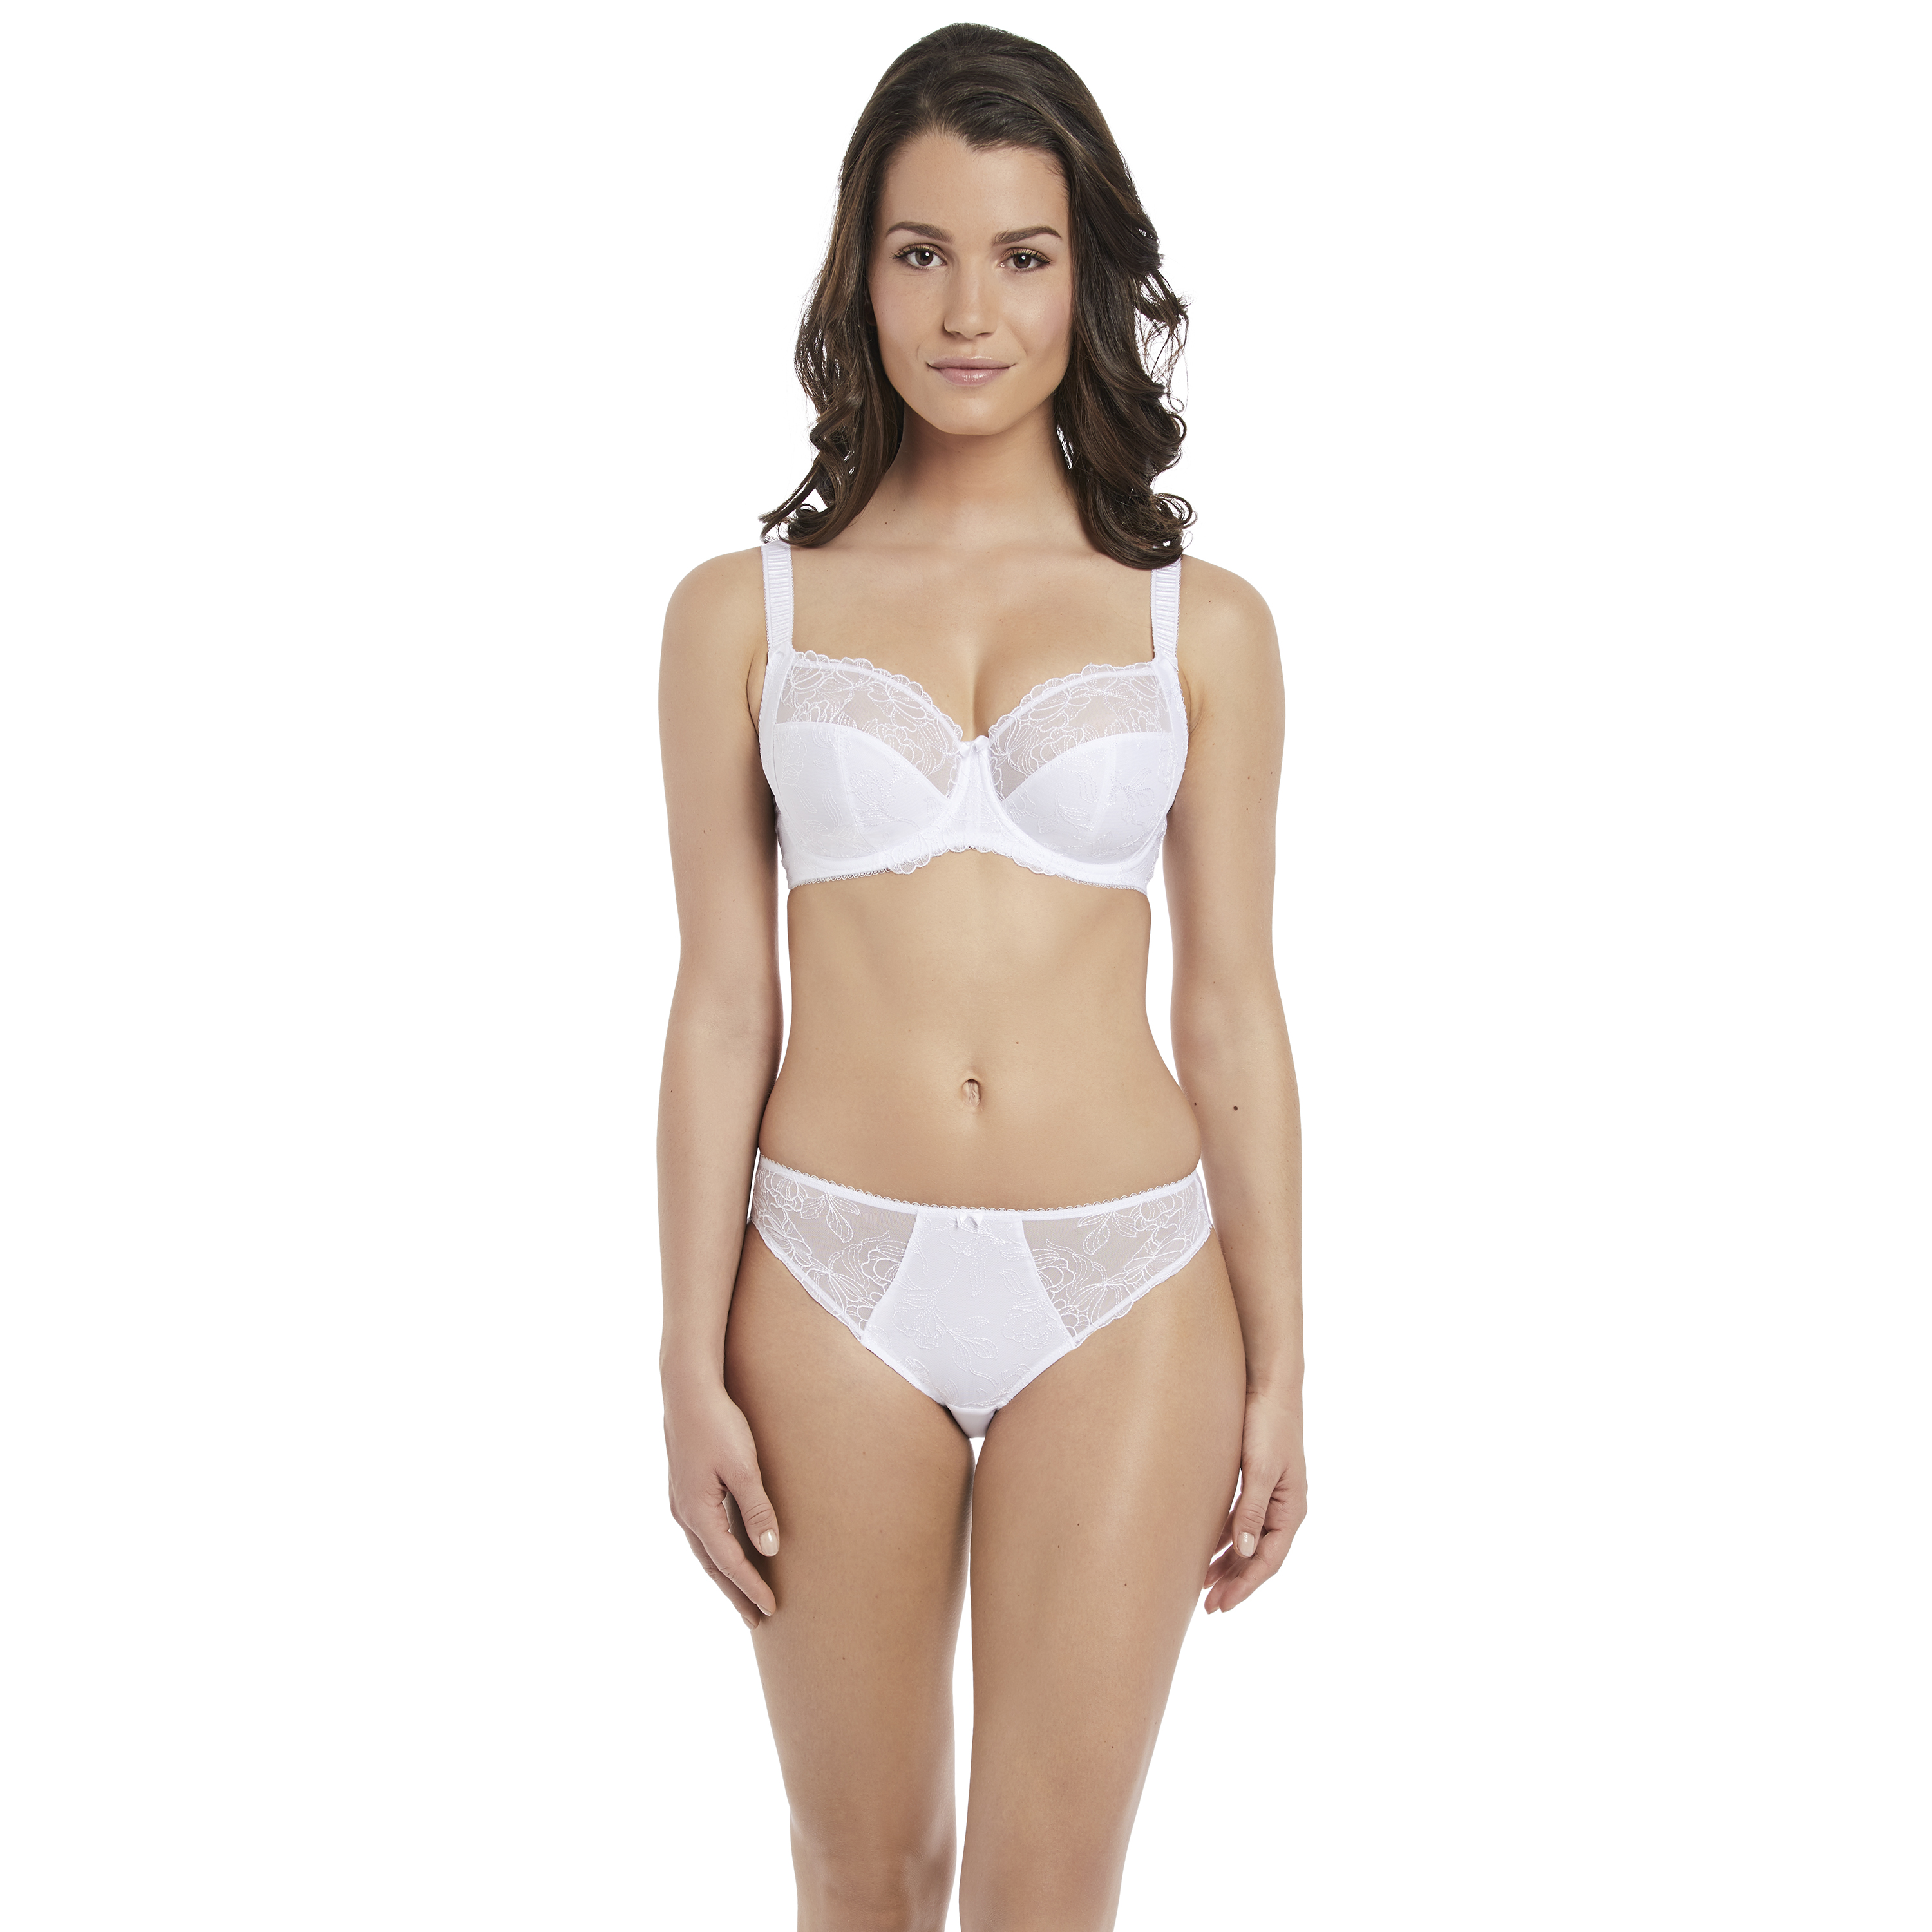 Fantasie Estelle White bra